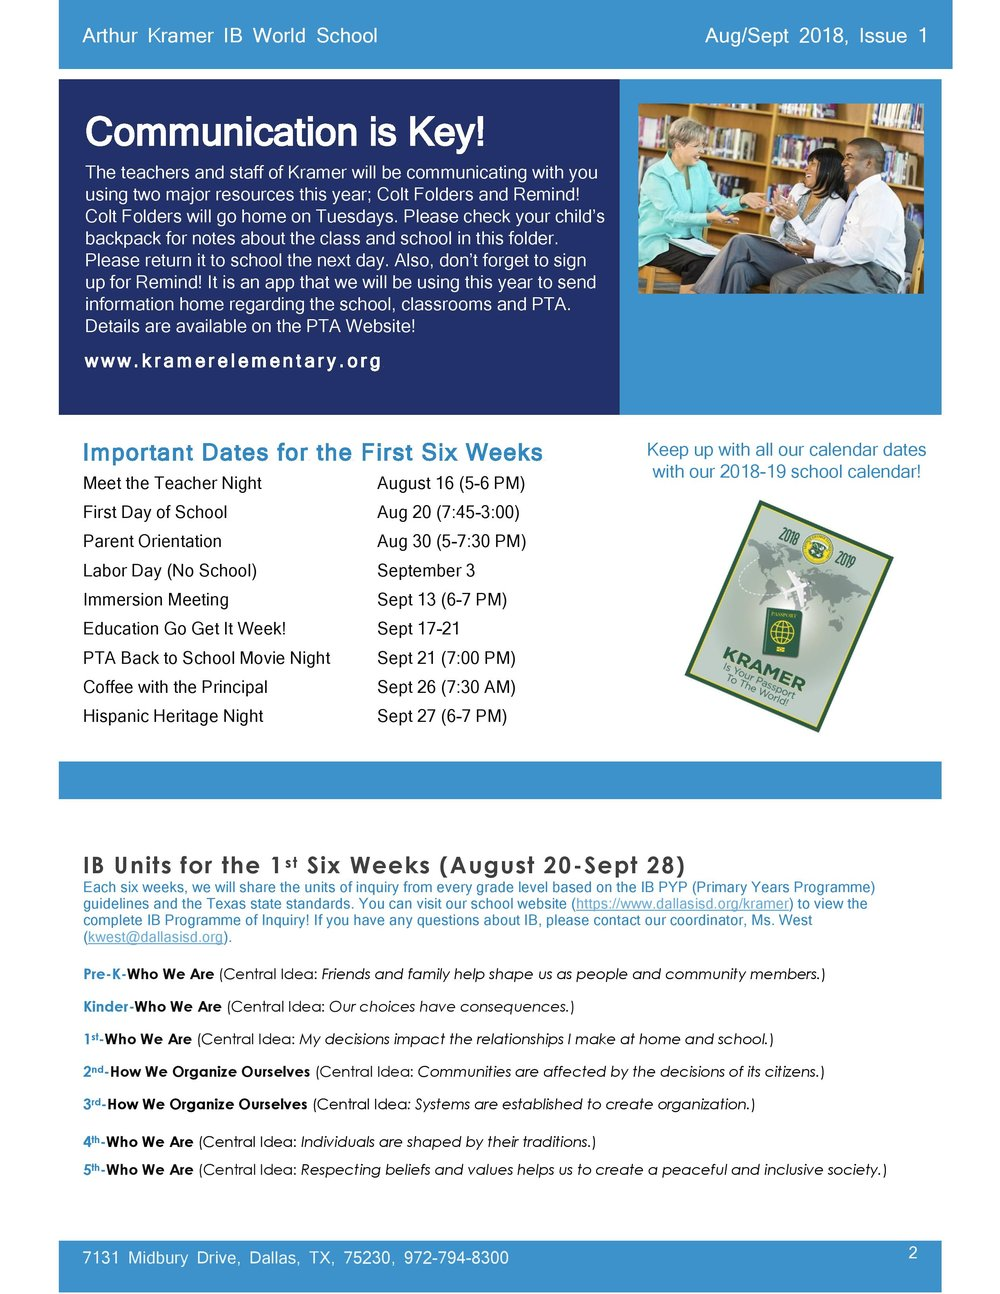 August Leadership Newsletter-page-002.jpg